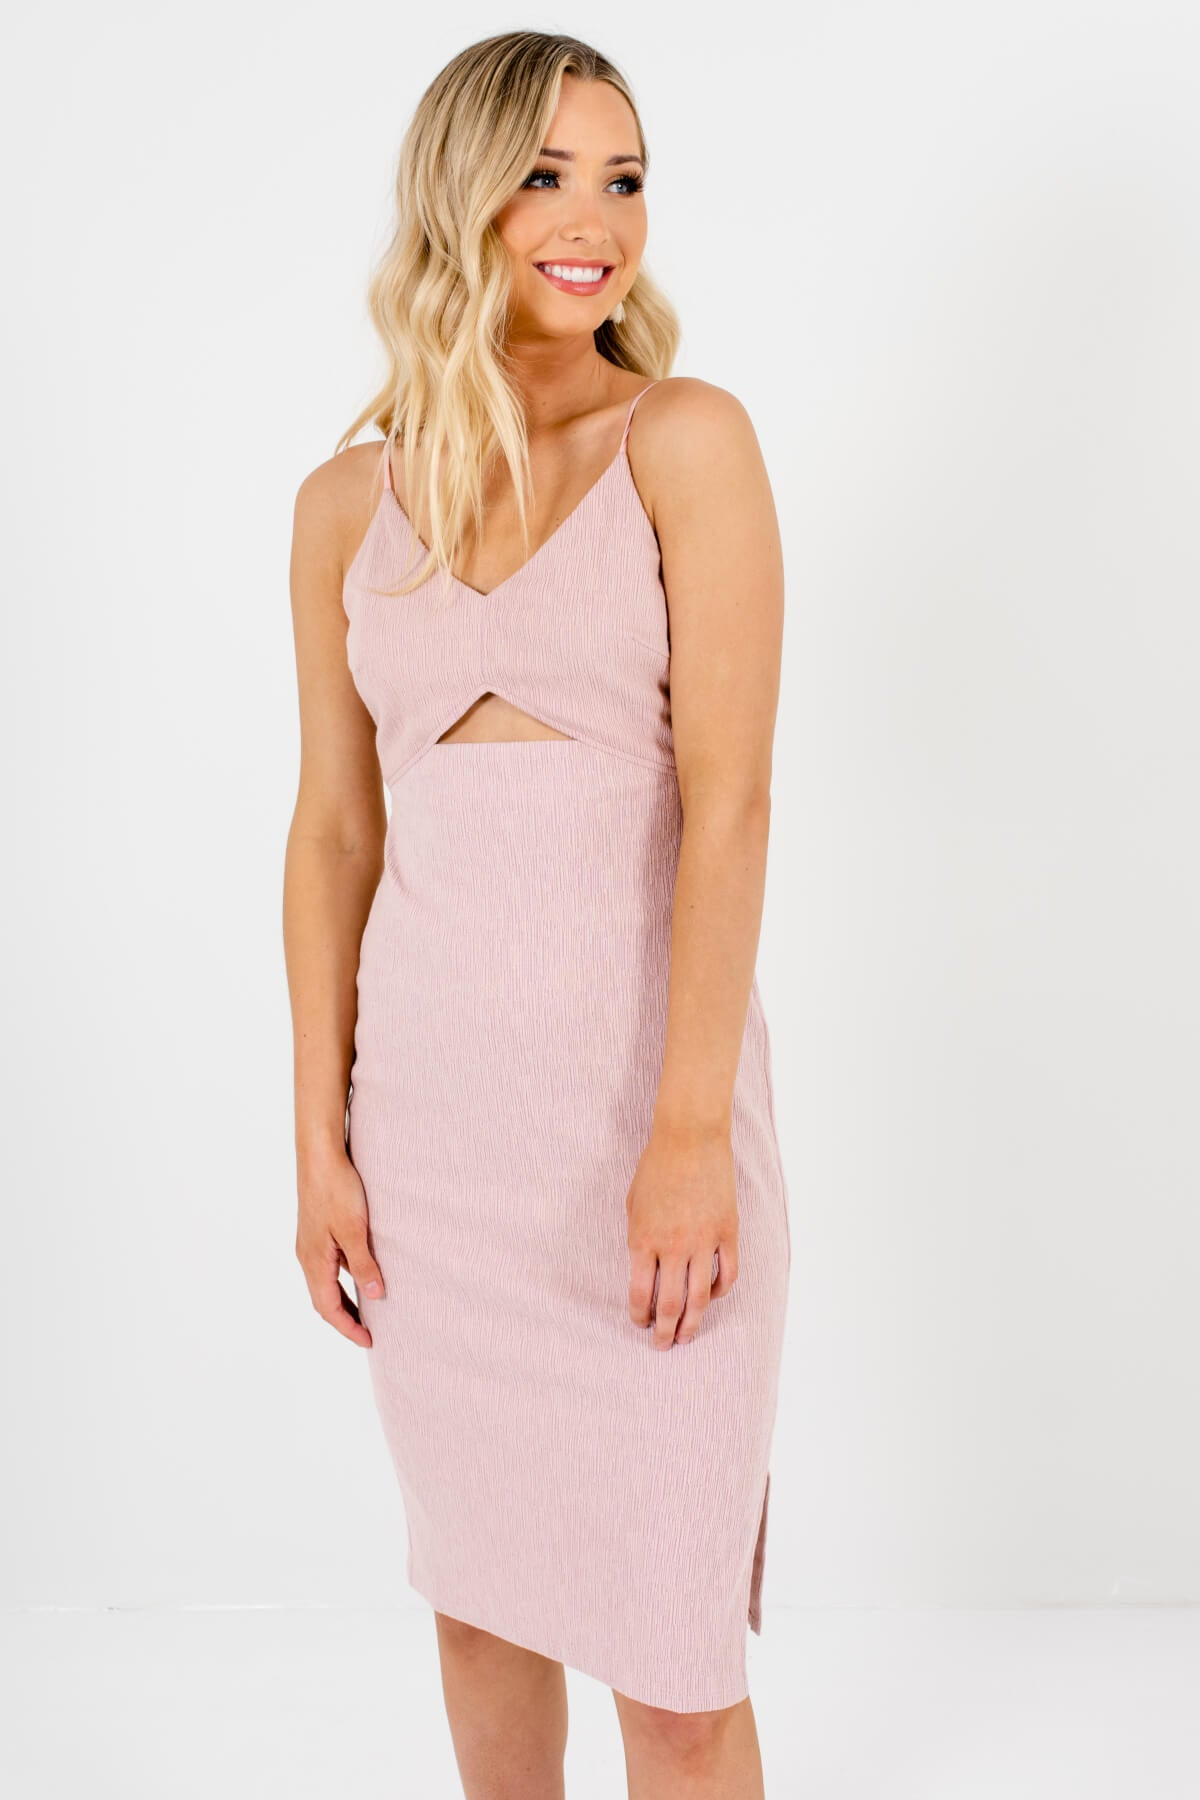 Pink Purple Knee-Length Boutique Night Out Dresses for Women